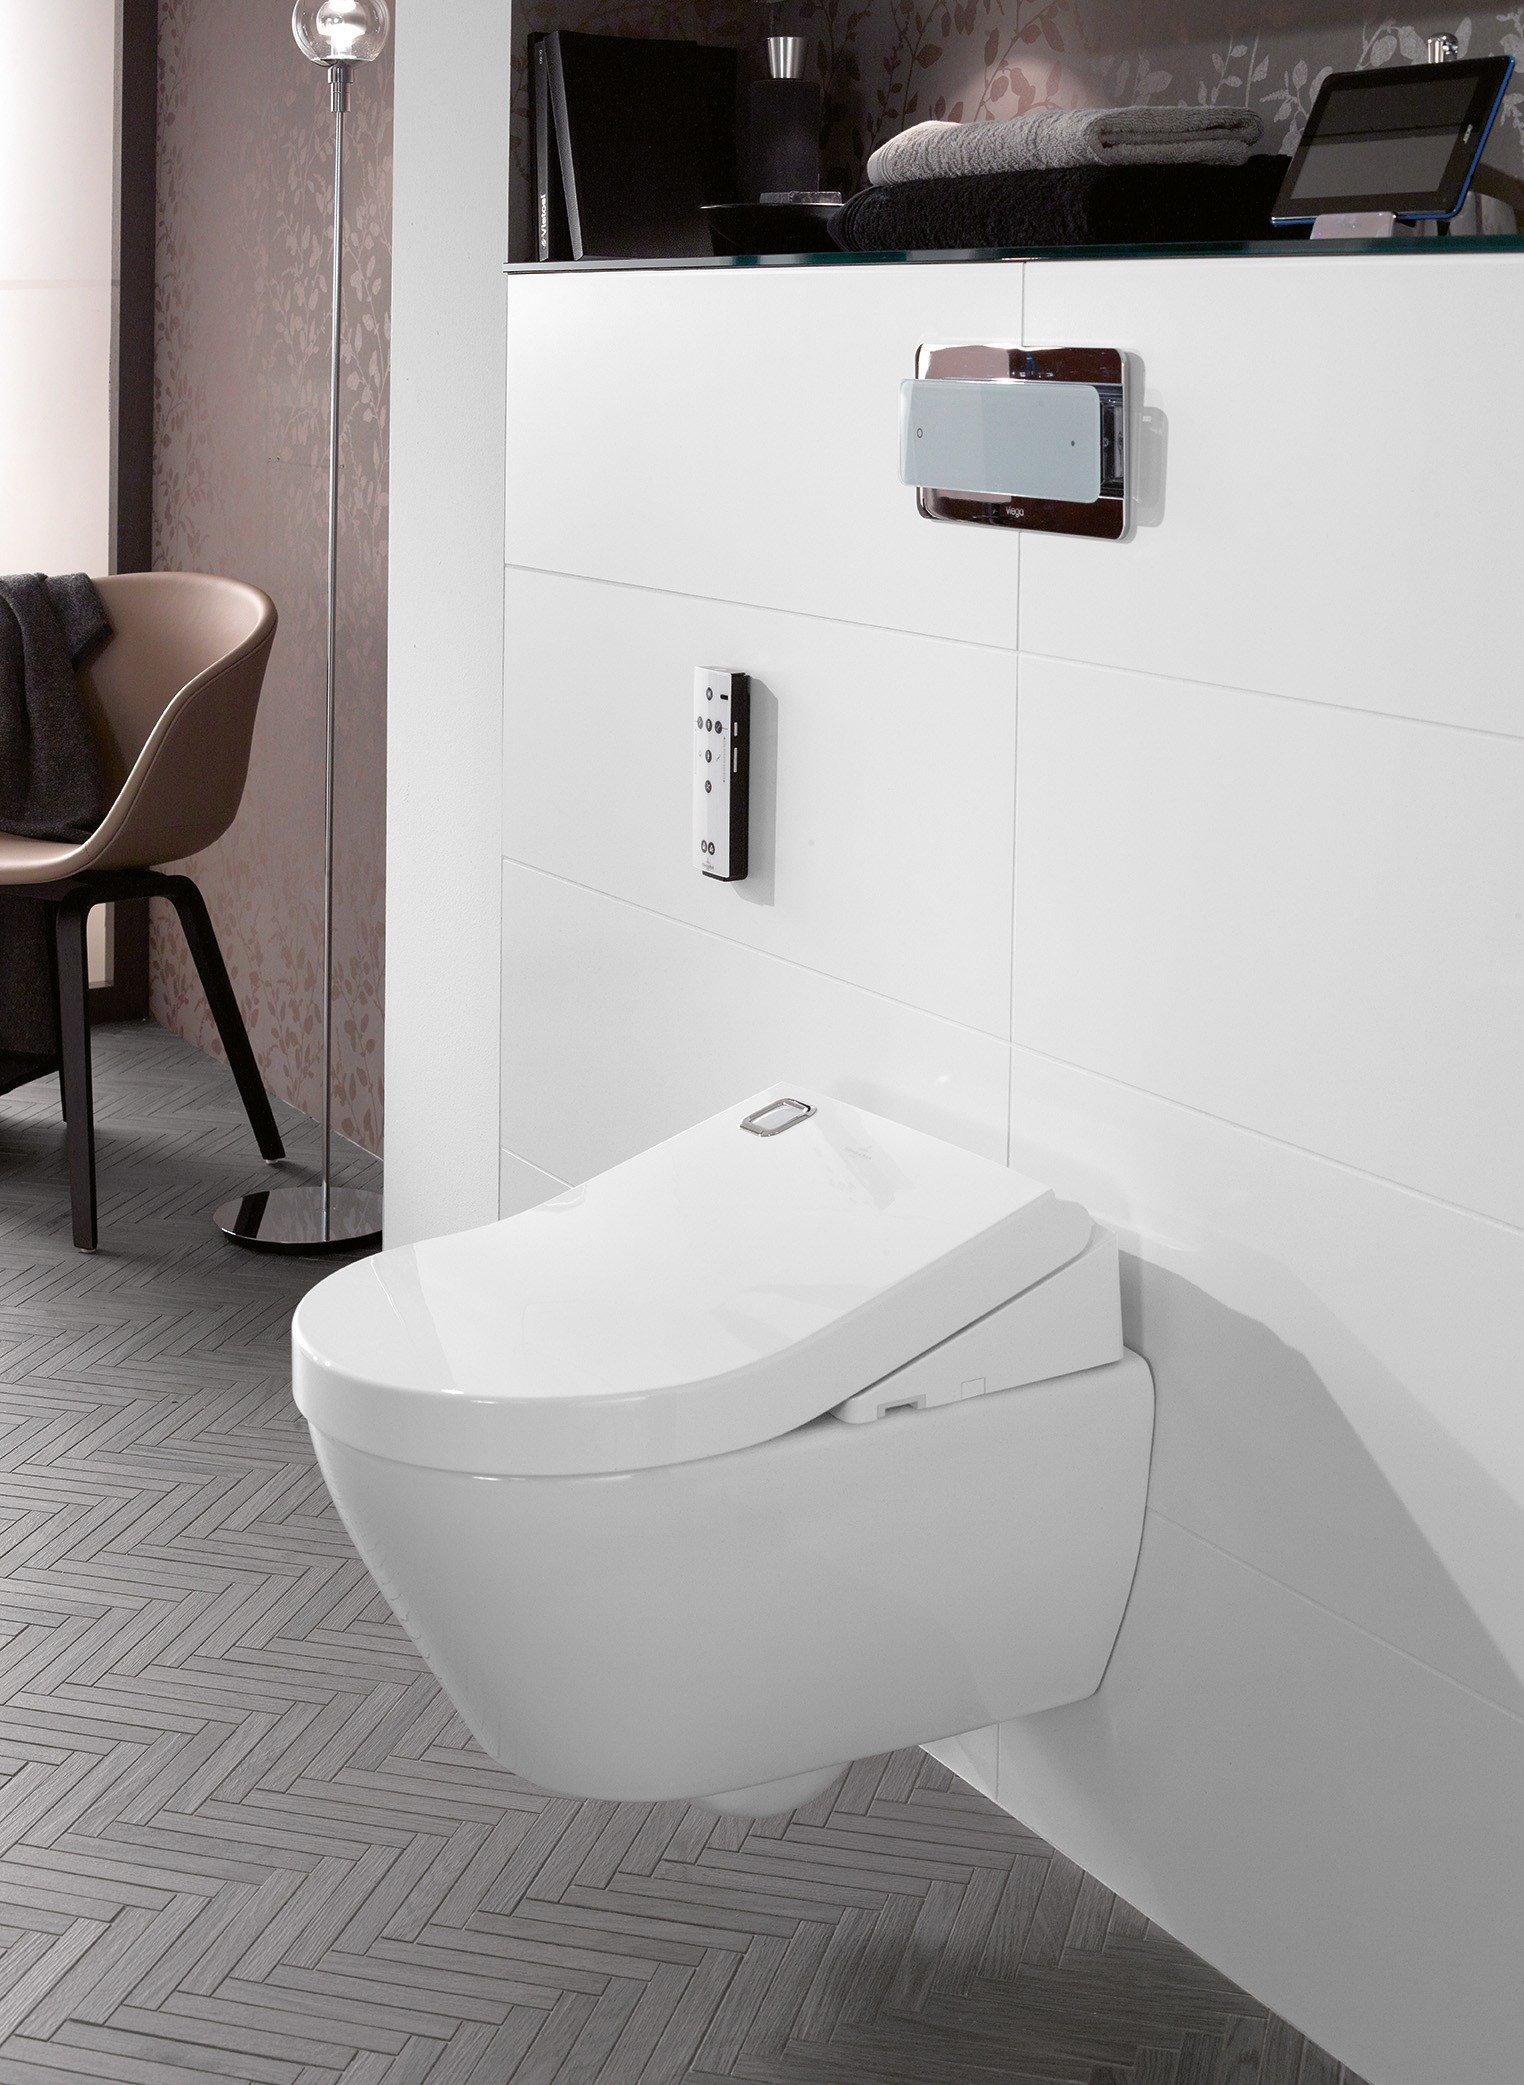 wc bidet sospeso viclean u by villeroy boch. Black Bedroom Furniture Sets. Home Design Ideas